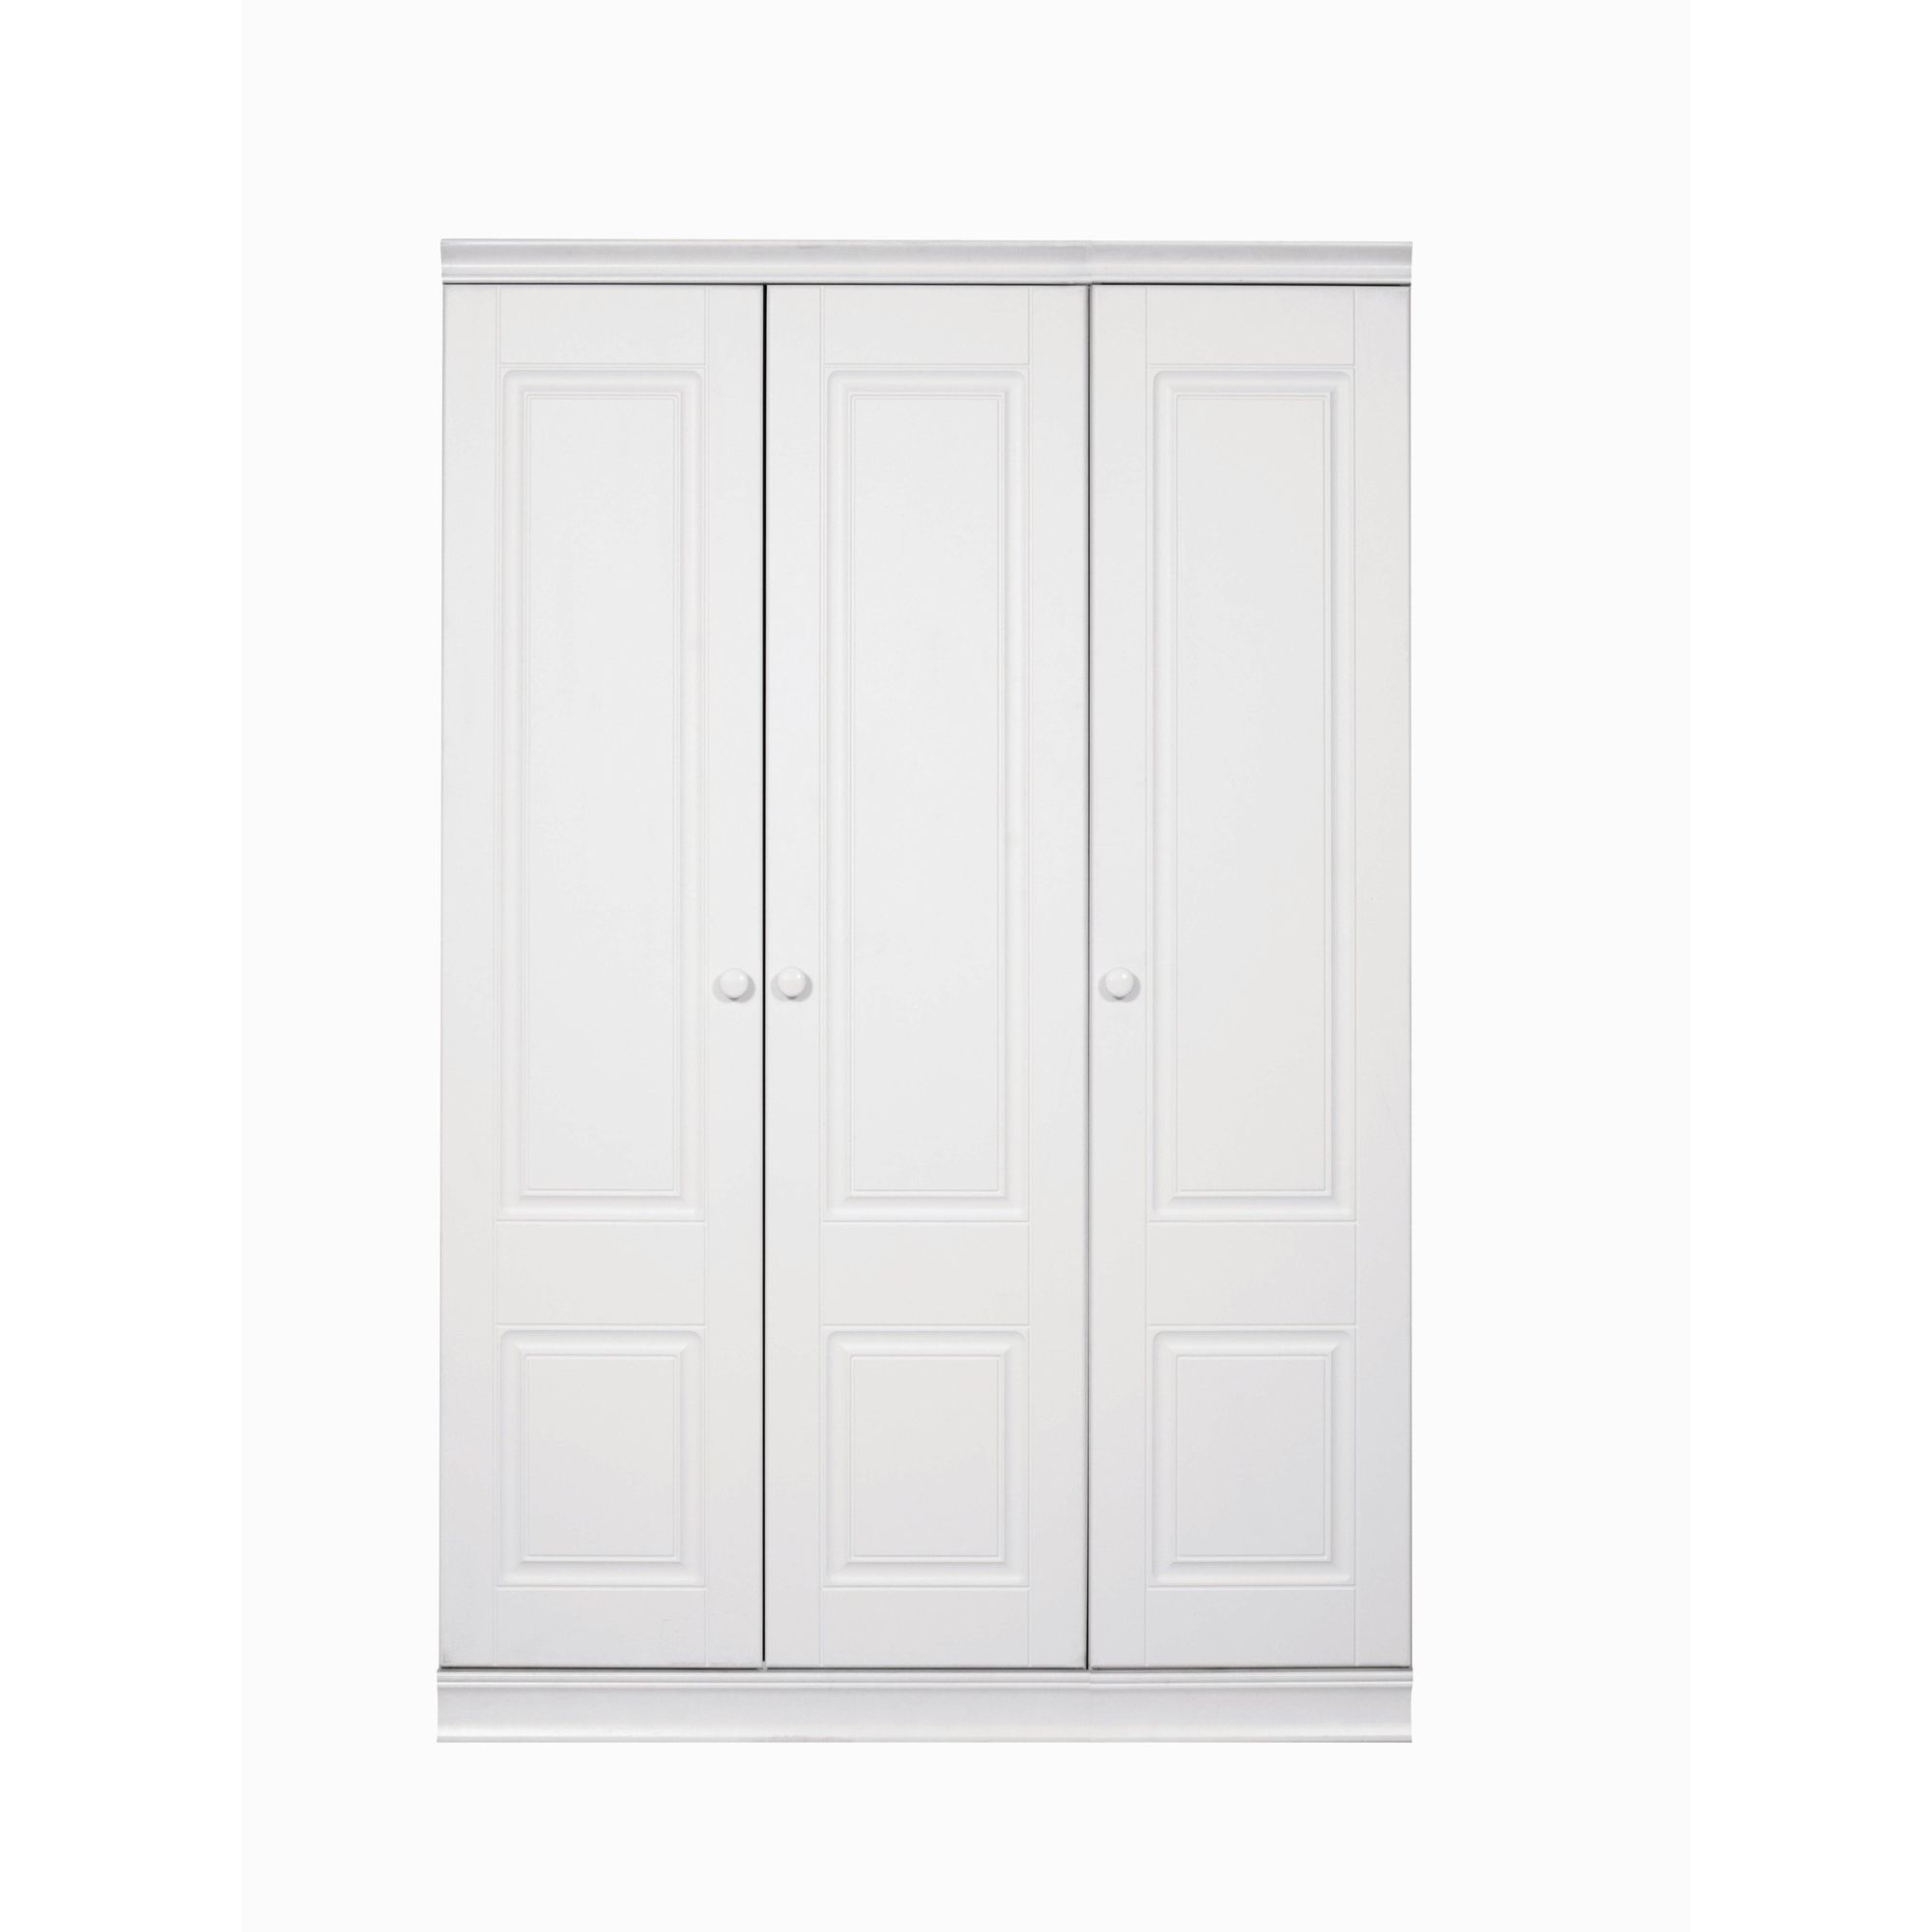 Caxton Henley 3 Door Short Height Wardrobe at Tesco Direct